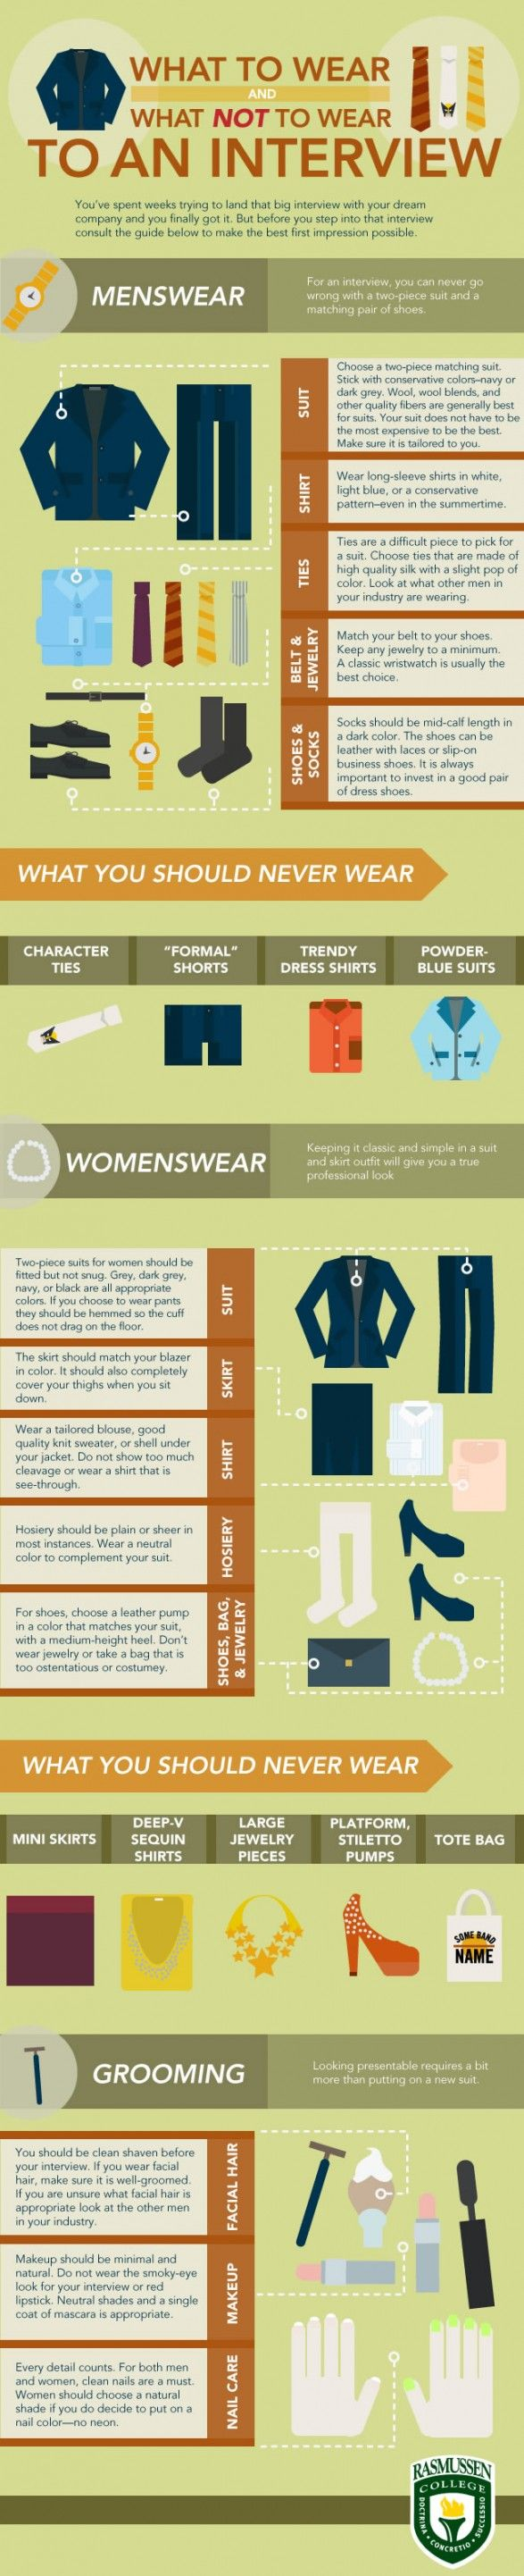 What/What Not to Wear to an Interview